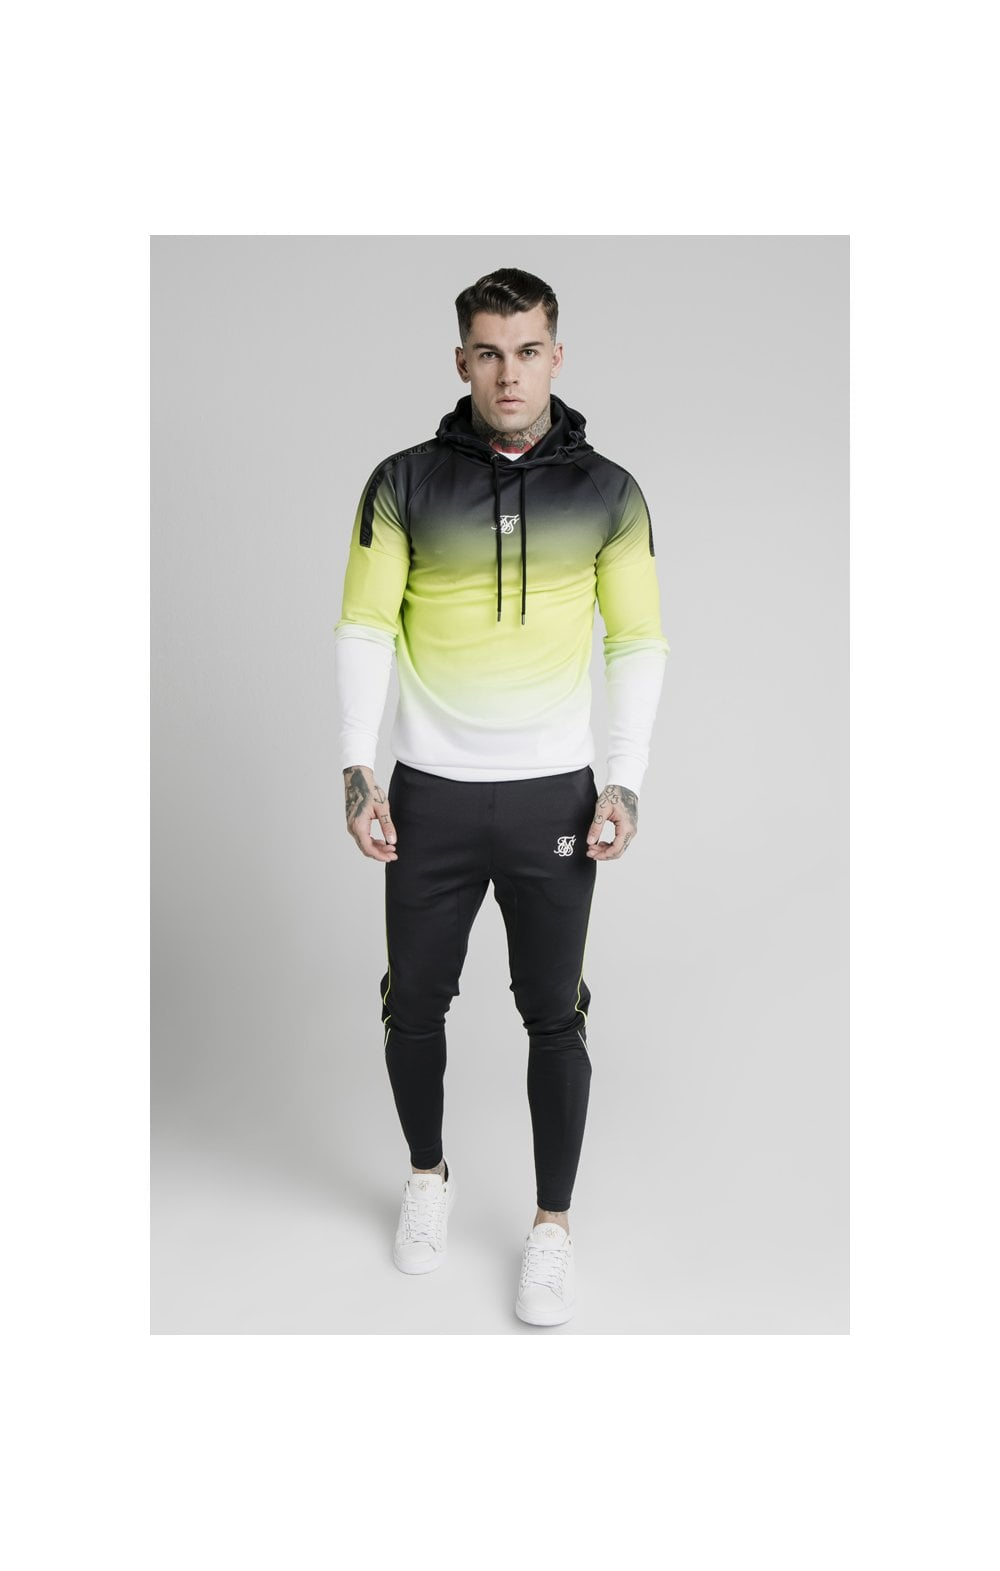 Load image into Gallery viewer, SikSilk Vapour Tri-Fade Overhead Hoodie - Black, Fluro & White